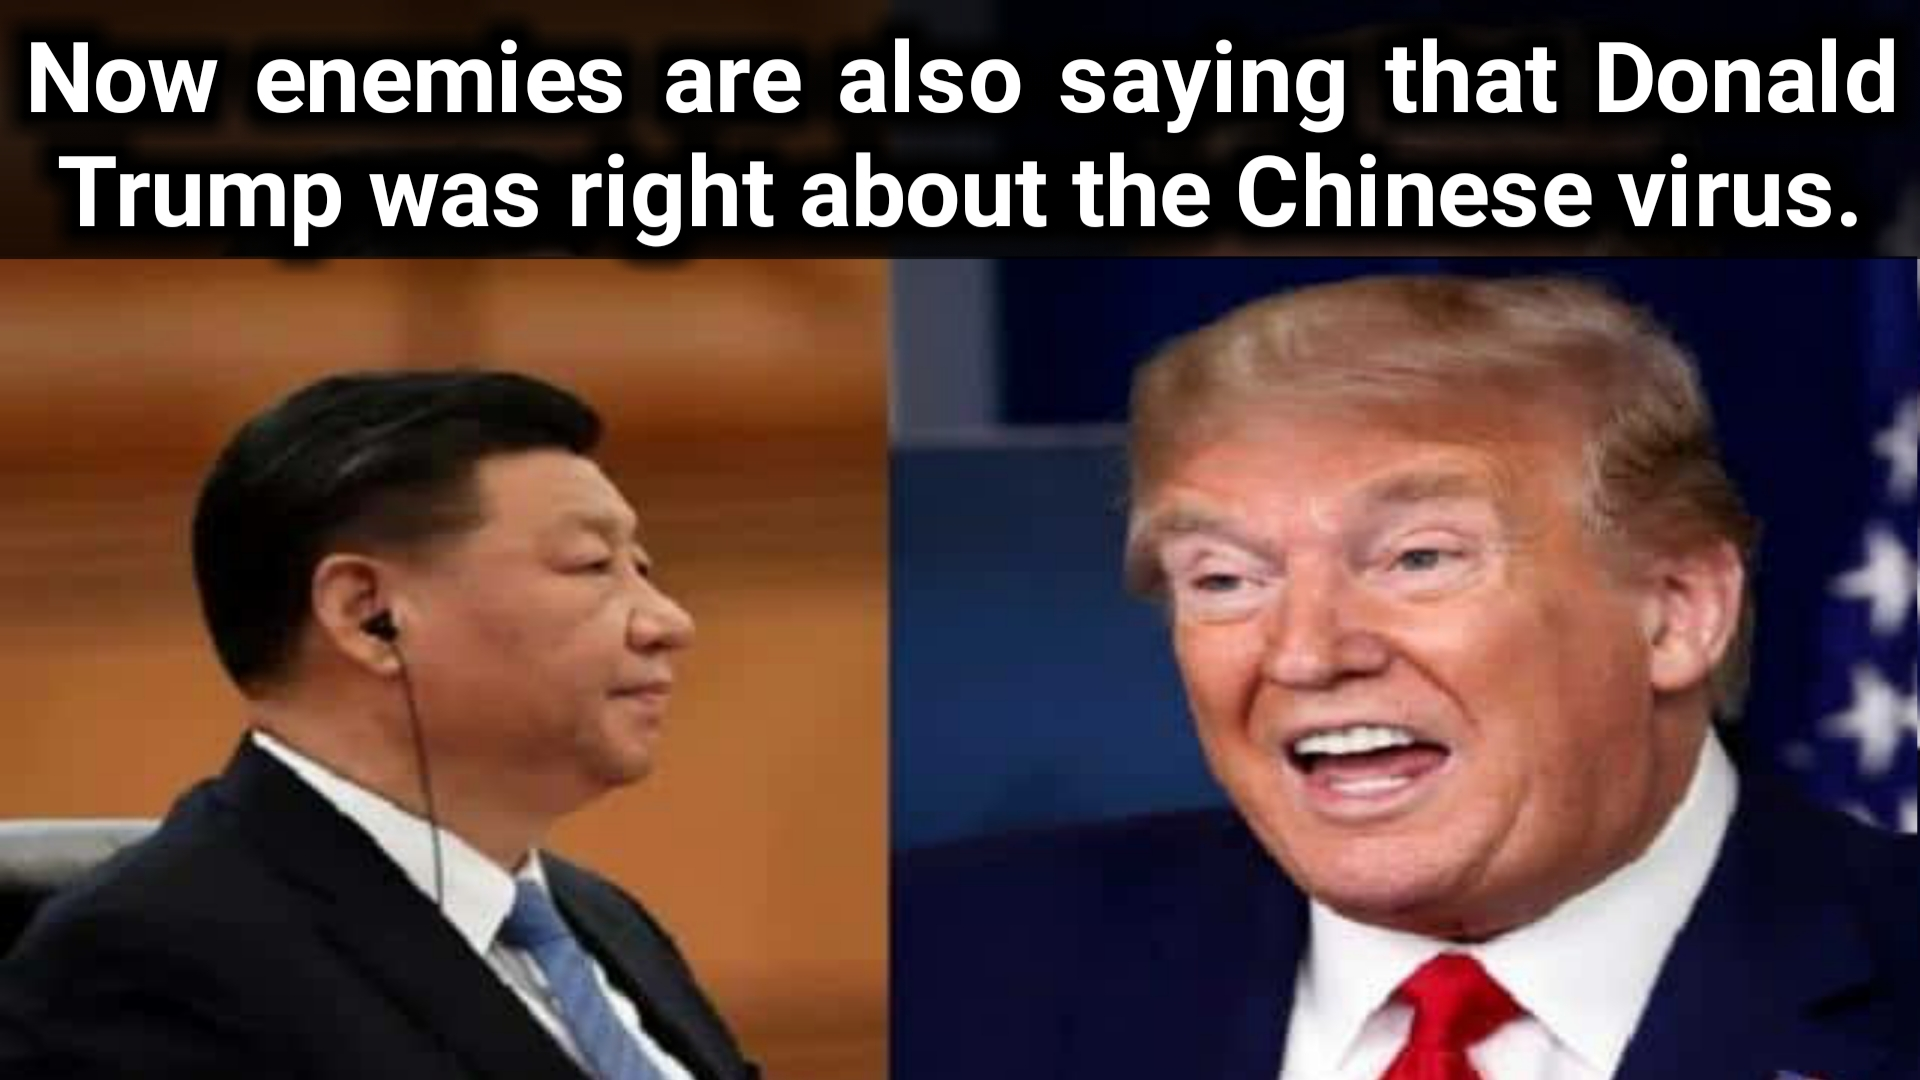 Now enemies are also saying that Donald Trump was right about the Chinese virus